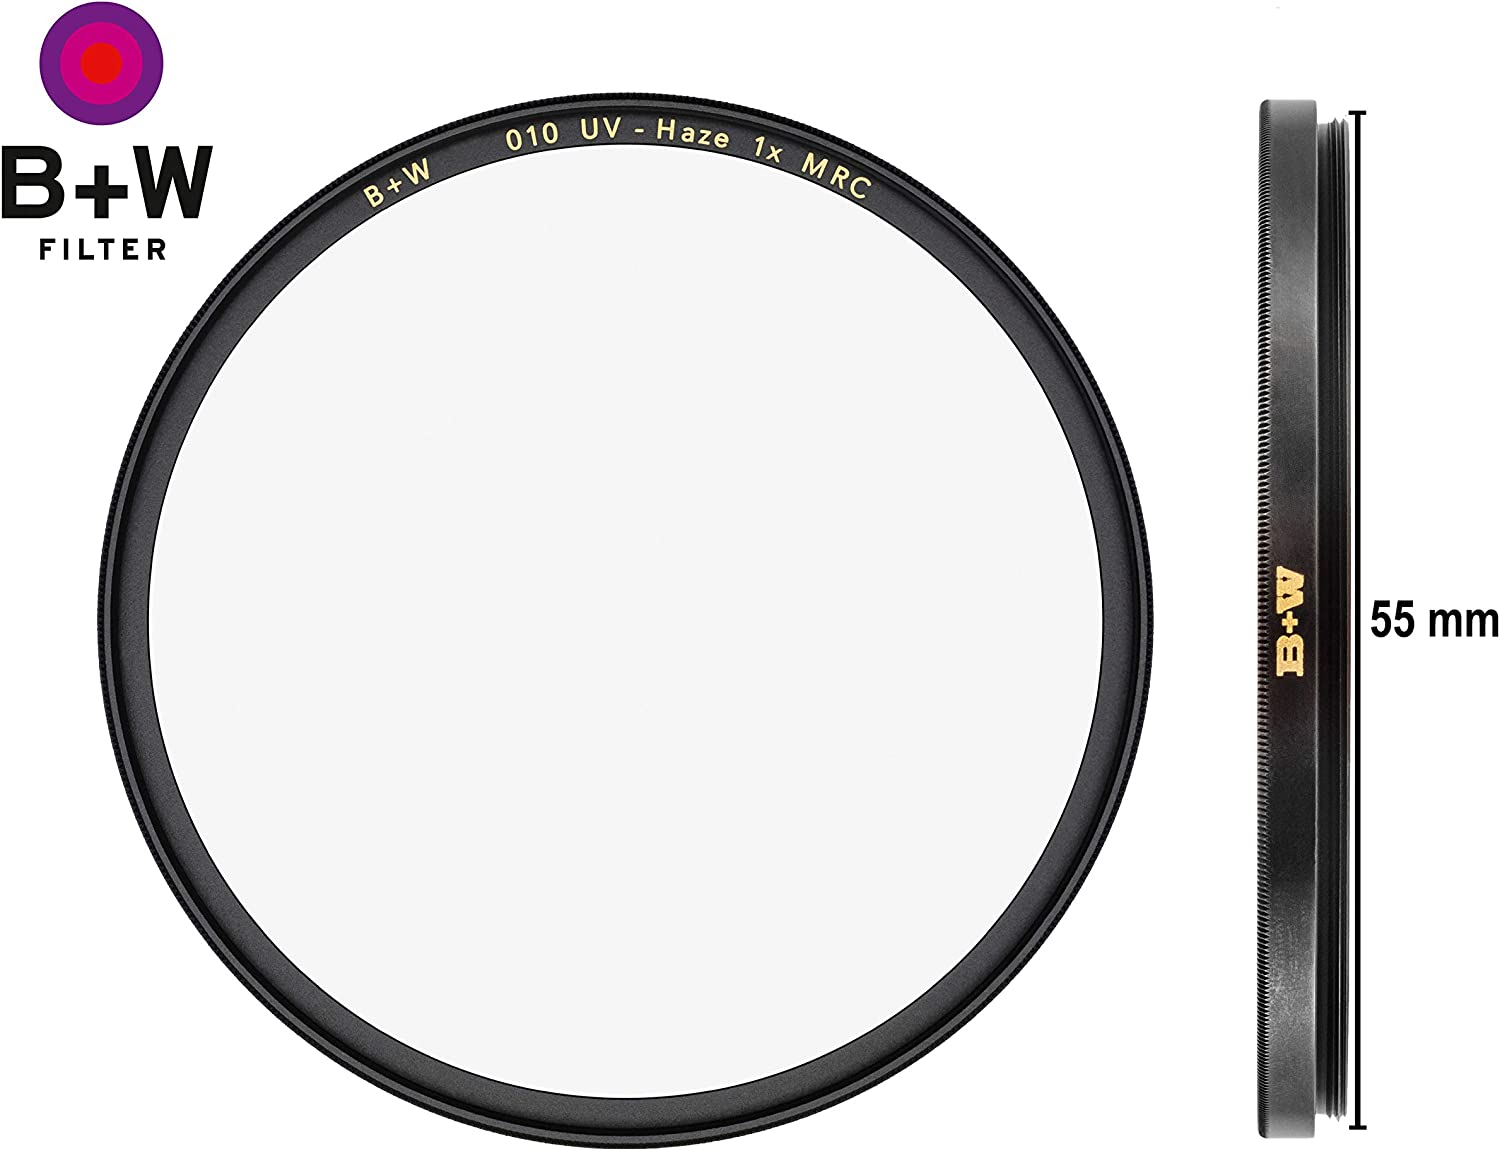 Ultra Slim Titan Mount W UV-Haze Protection Filter for Camera Lens 16 Layers Multi-Resistant and Nano Coating 010 T-PRO 72 mm HTC B Photography Filter